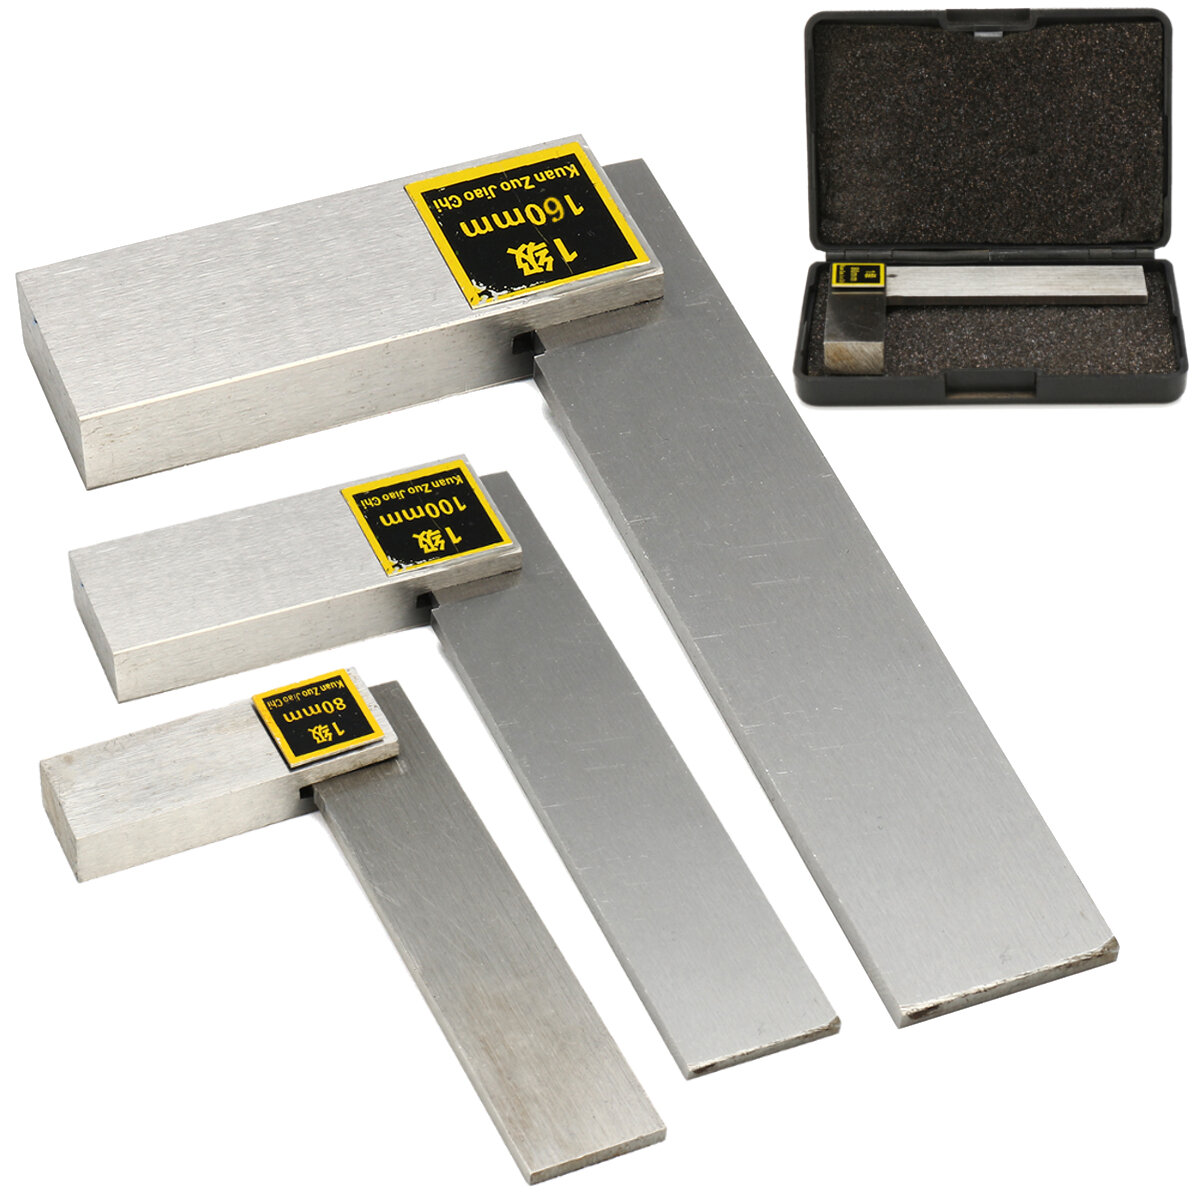 Machinist Bevel Square 90° Right Angle Ruler High Precision Design Tool, Banggood  - buy with discount